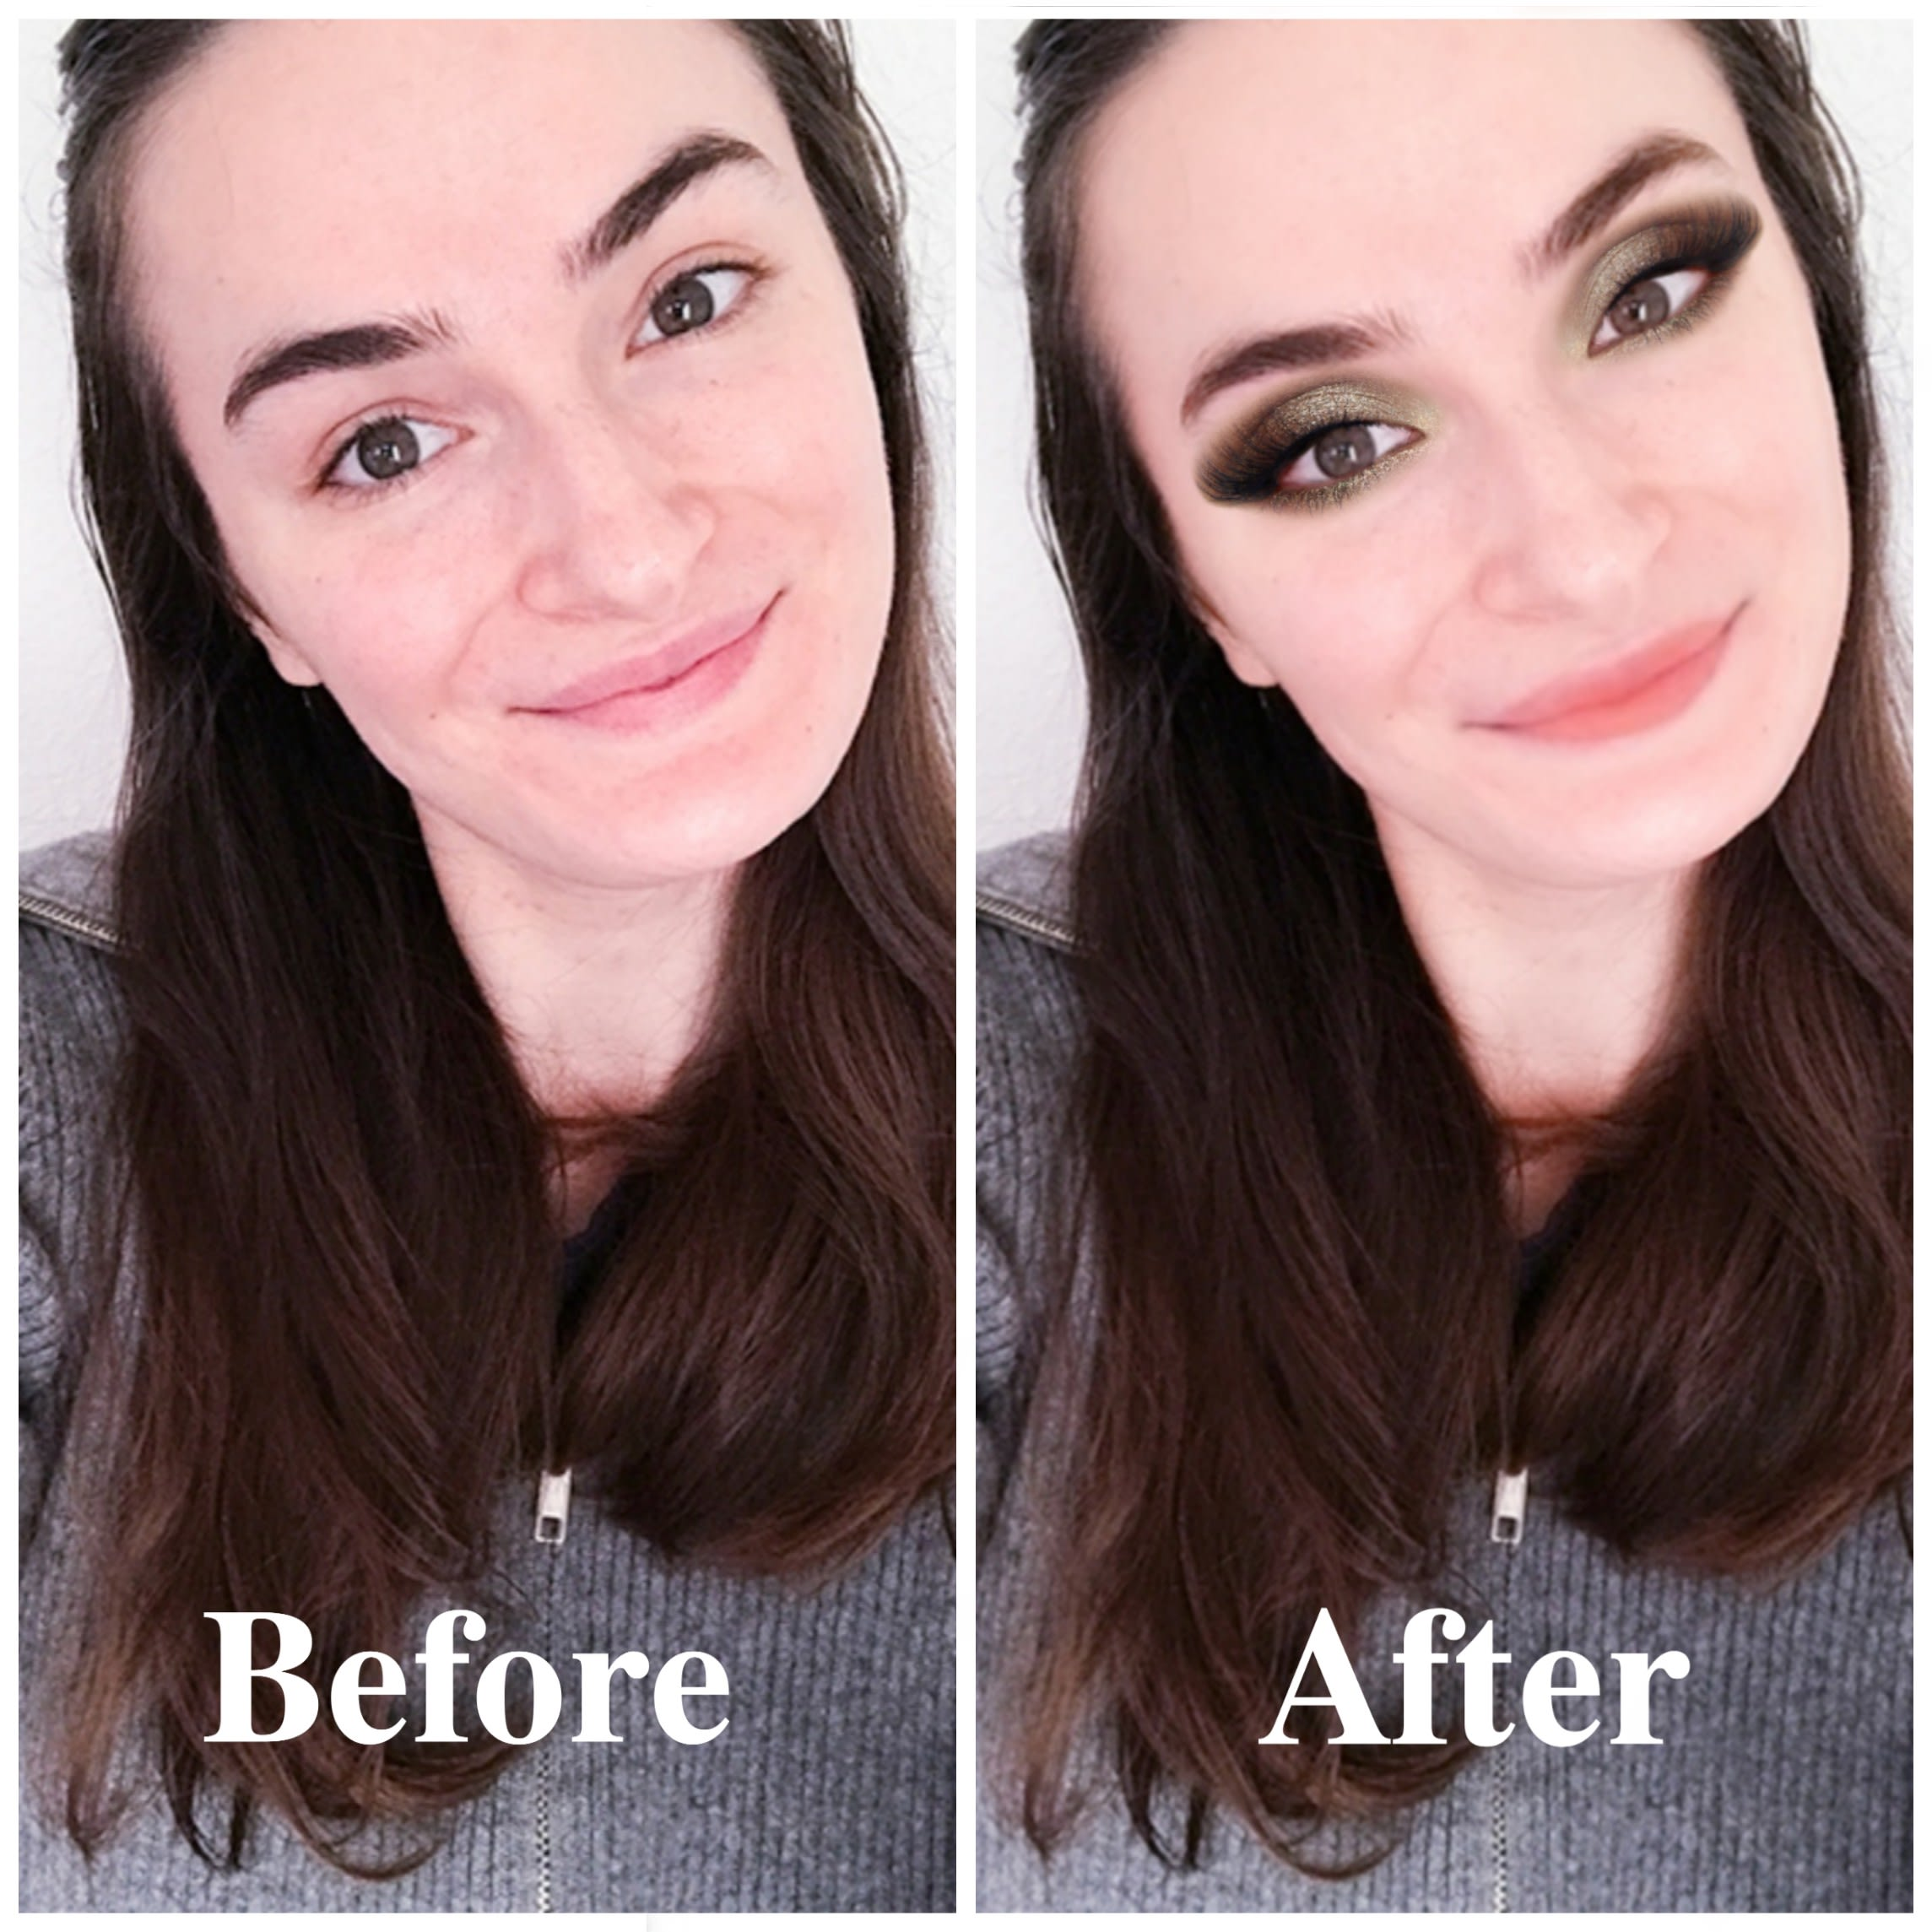 Add Makeup To Your Picture By Aestheticwp